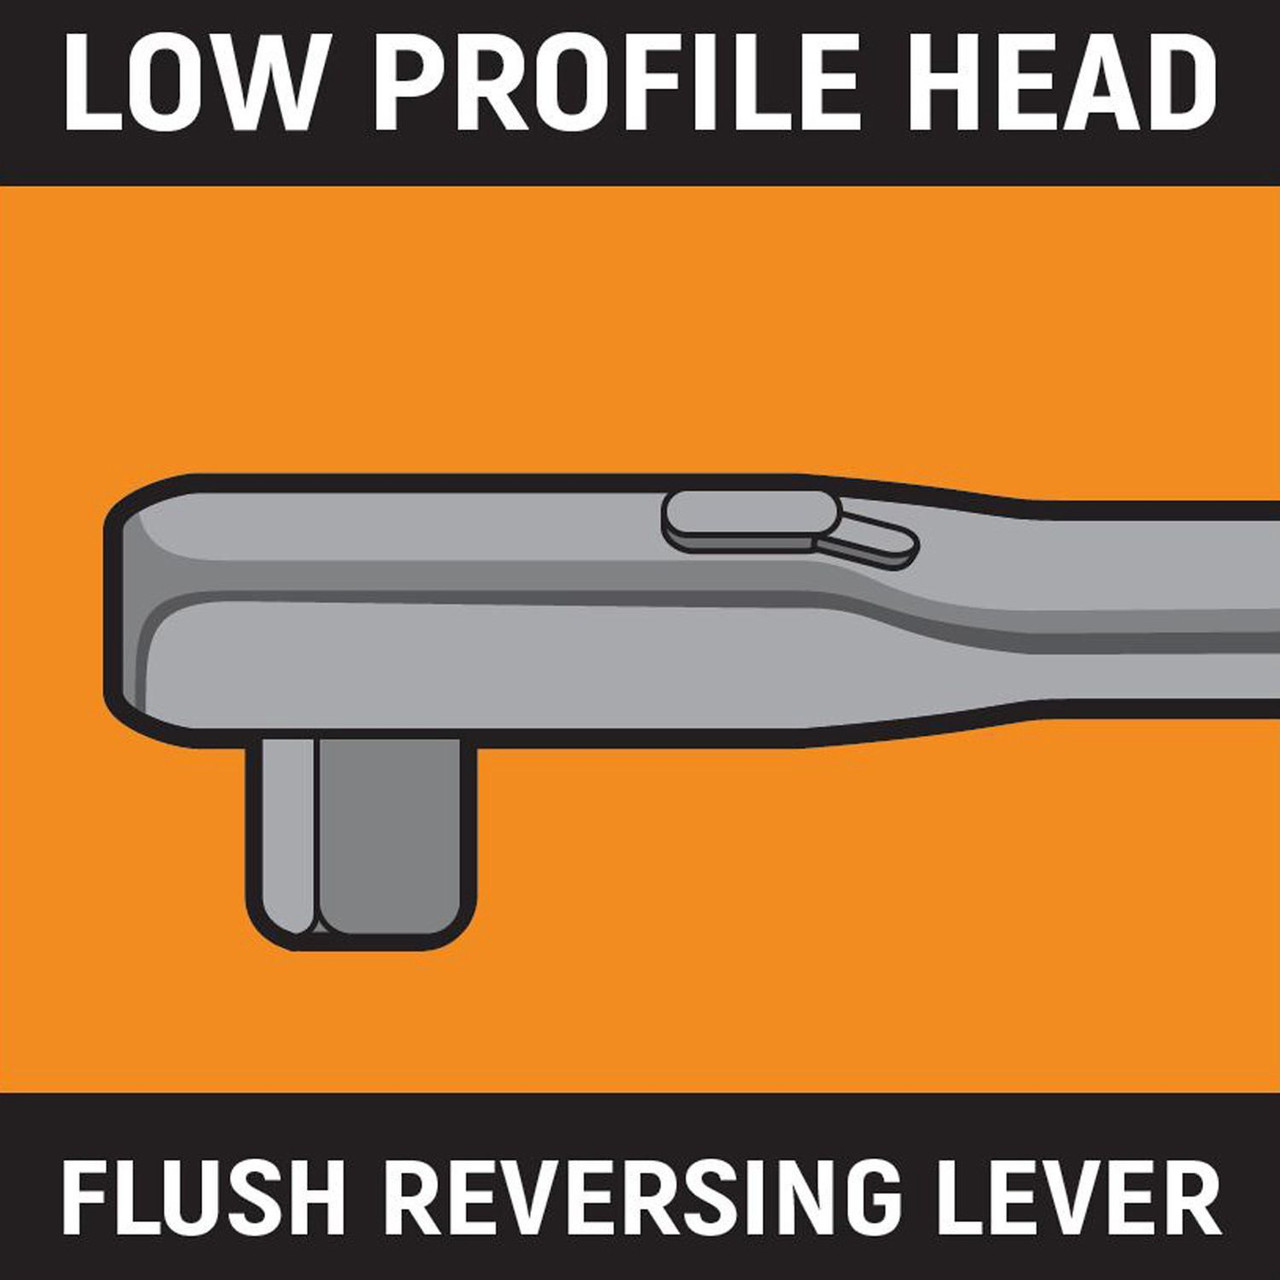 Gearwrench Low profile head flush reversing lever